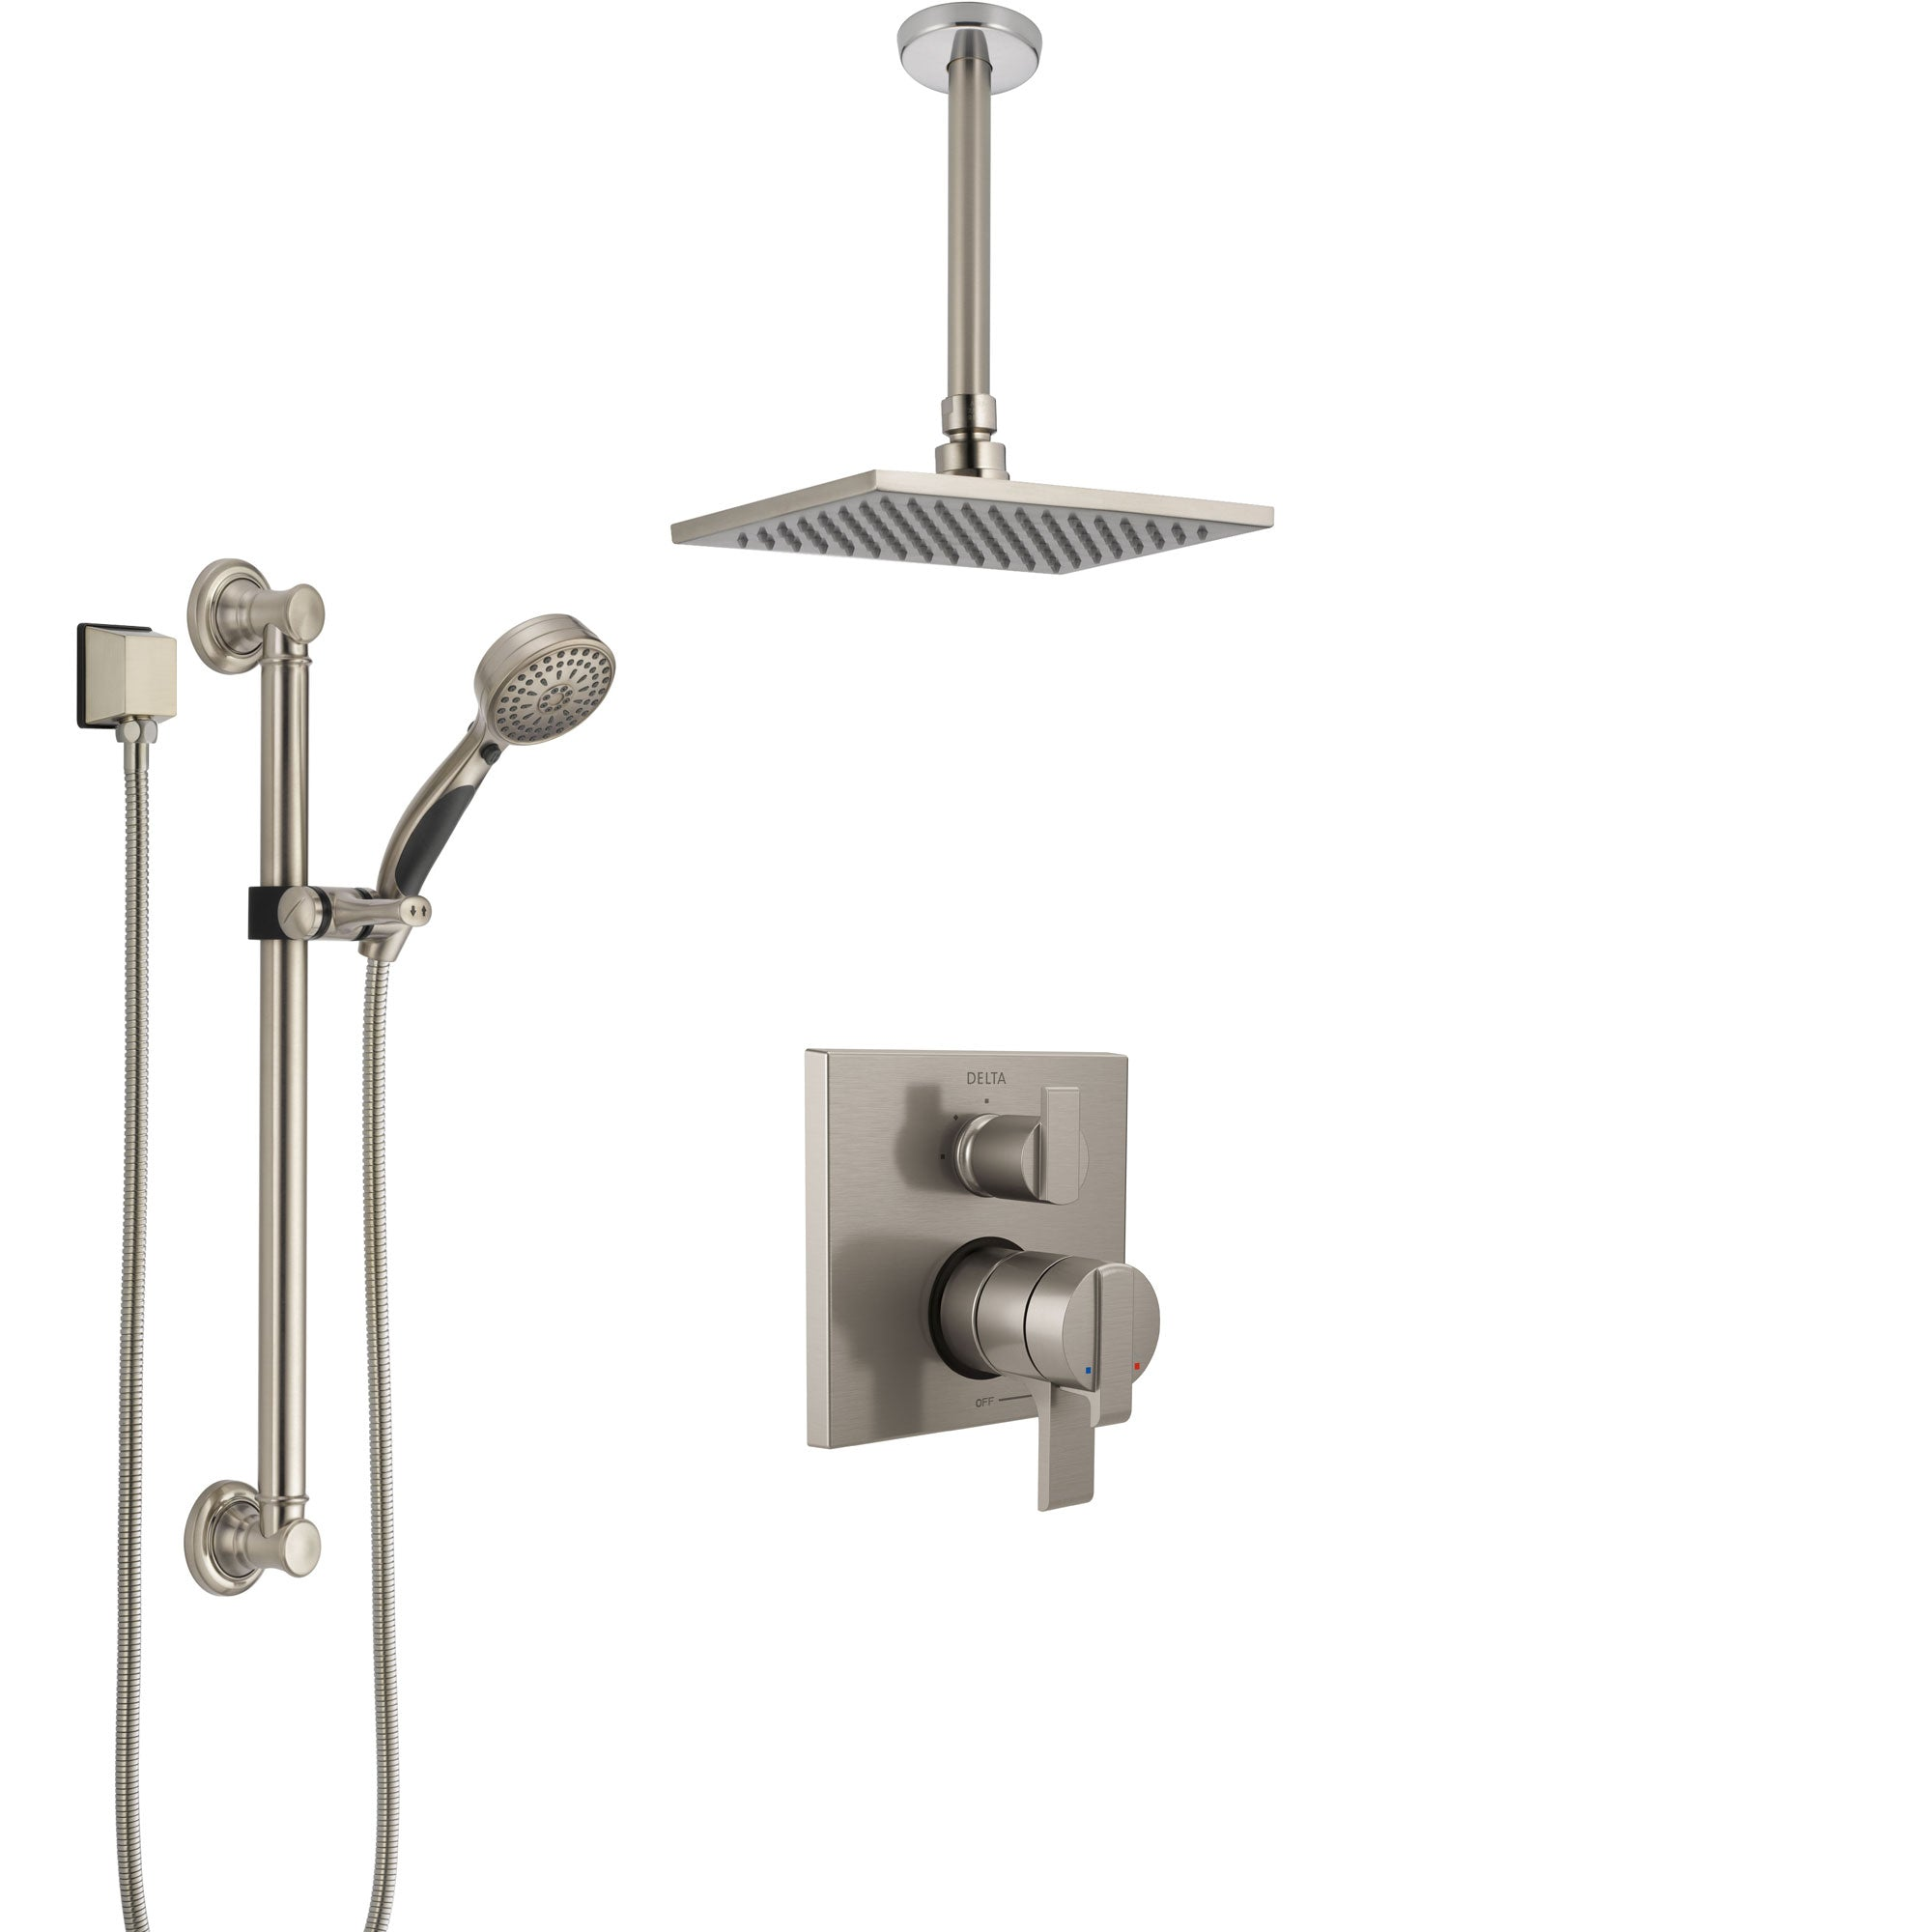 Delta Ara Dual Control Handle Stainless Steel Finish Integrated Diverter Shower System, Ceiling Mount Showerhead, and Grab Bar Hand Shower SS27867SS2